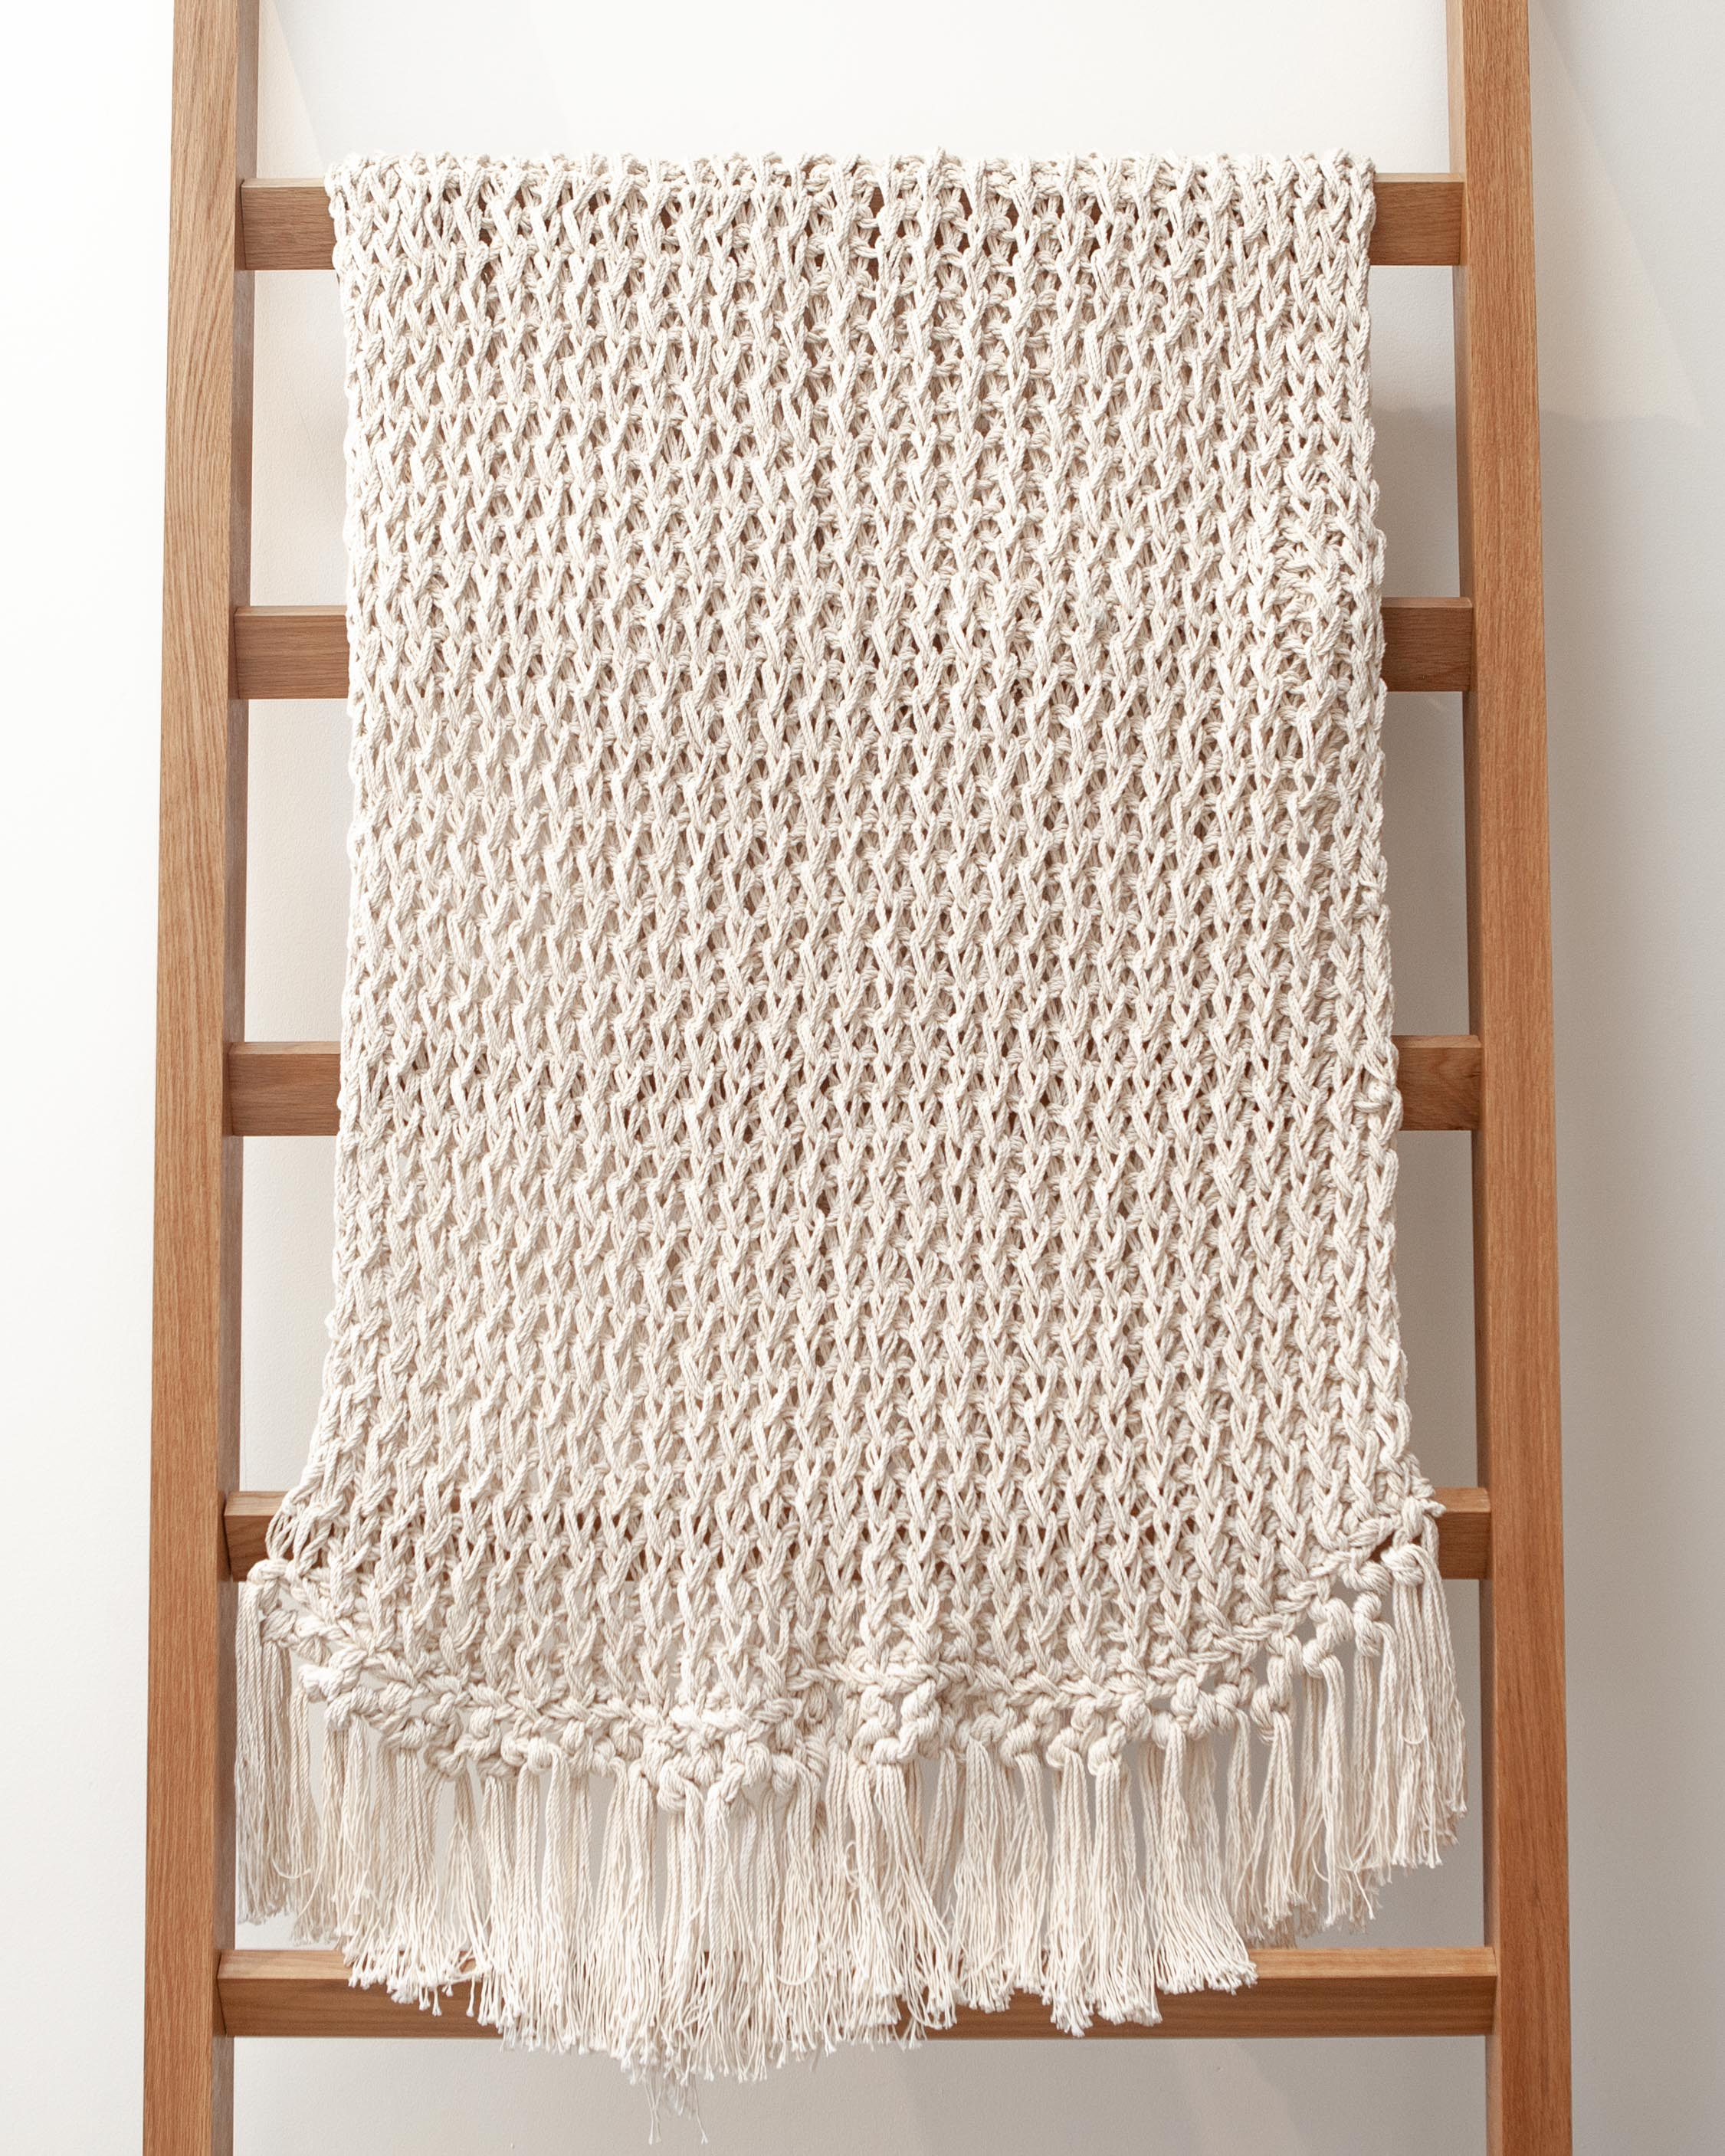 Open weave recycled cotton natural through with fringe